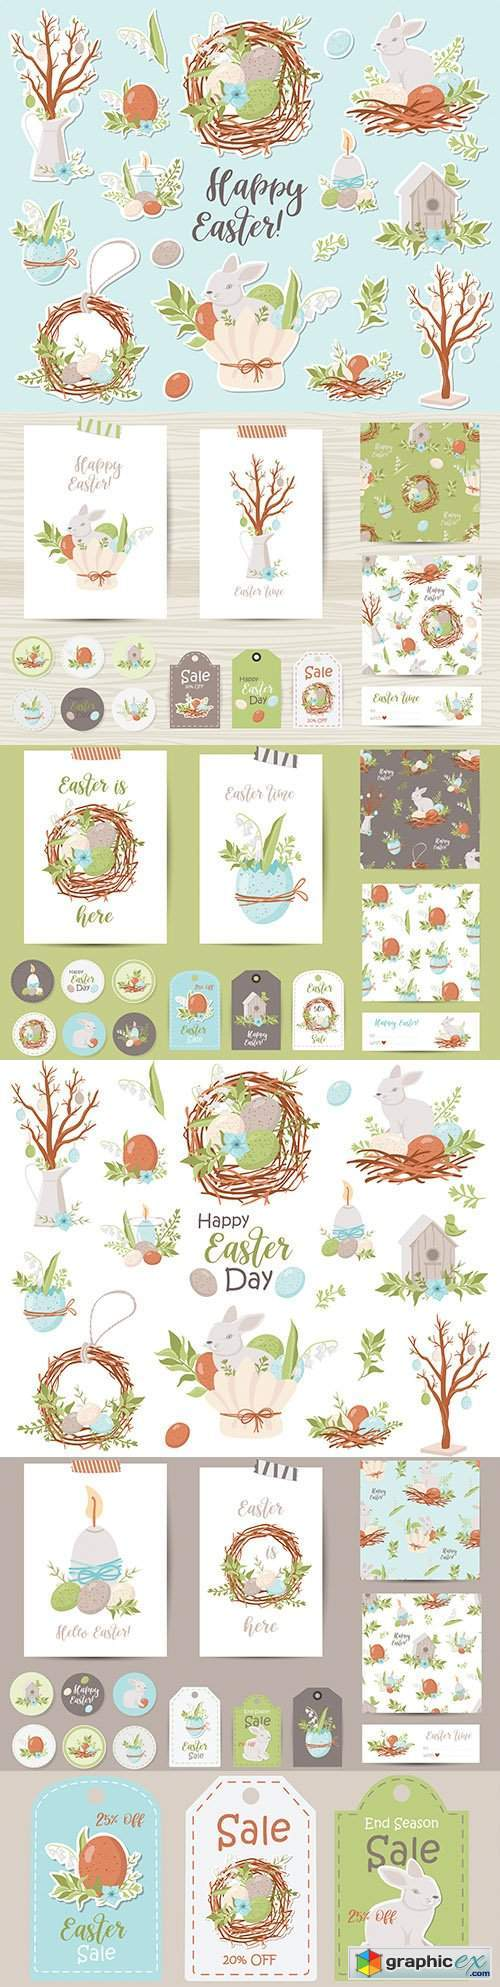 Happy Easter funny rabbit stickers and holiday elements